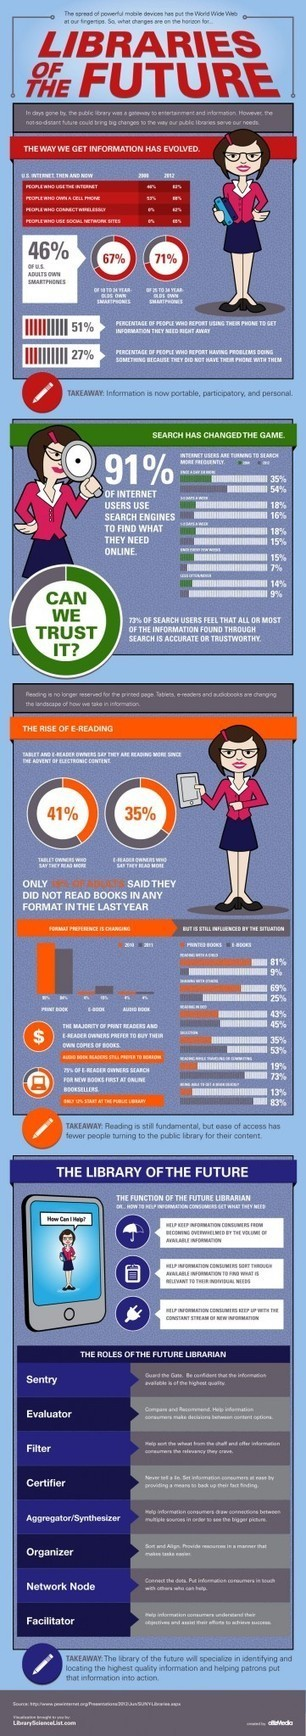 Libraries of the Future Infographic | library news | Scoop.it